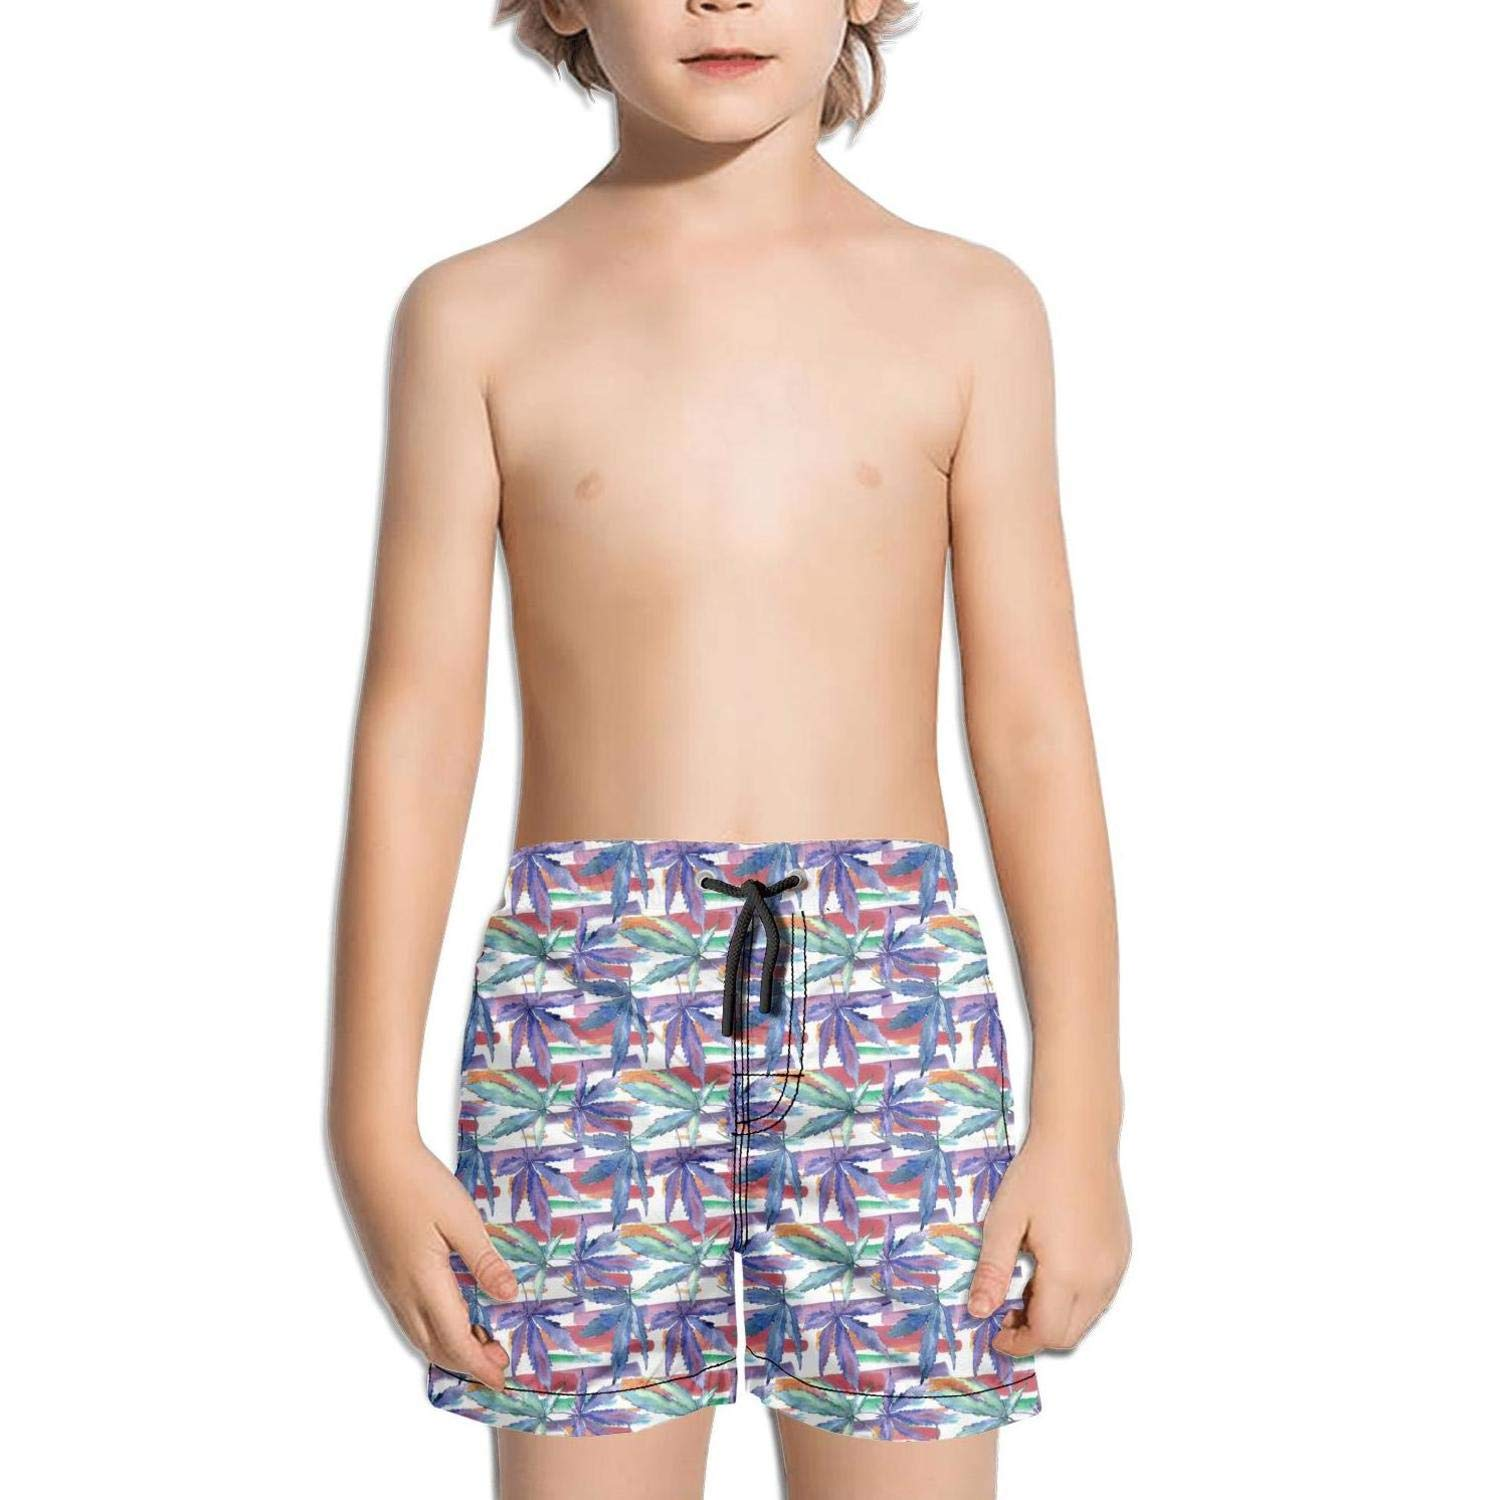 Kids Organic Cannabis Cure Hemp Swim Trunks Surf Water Sport Funny Boardshorts